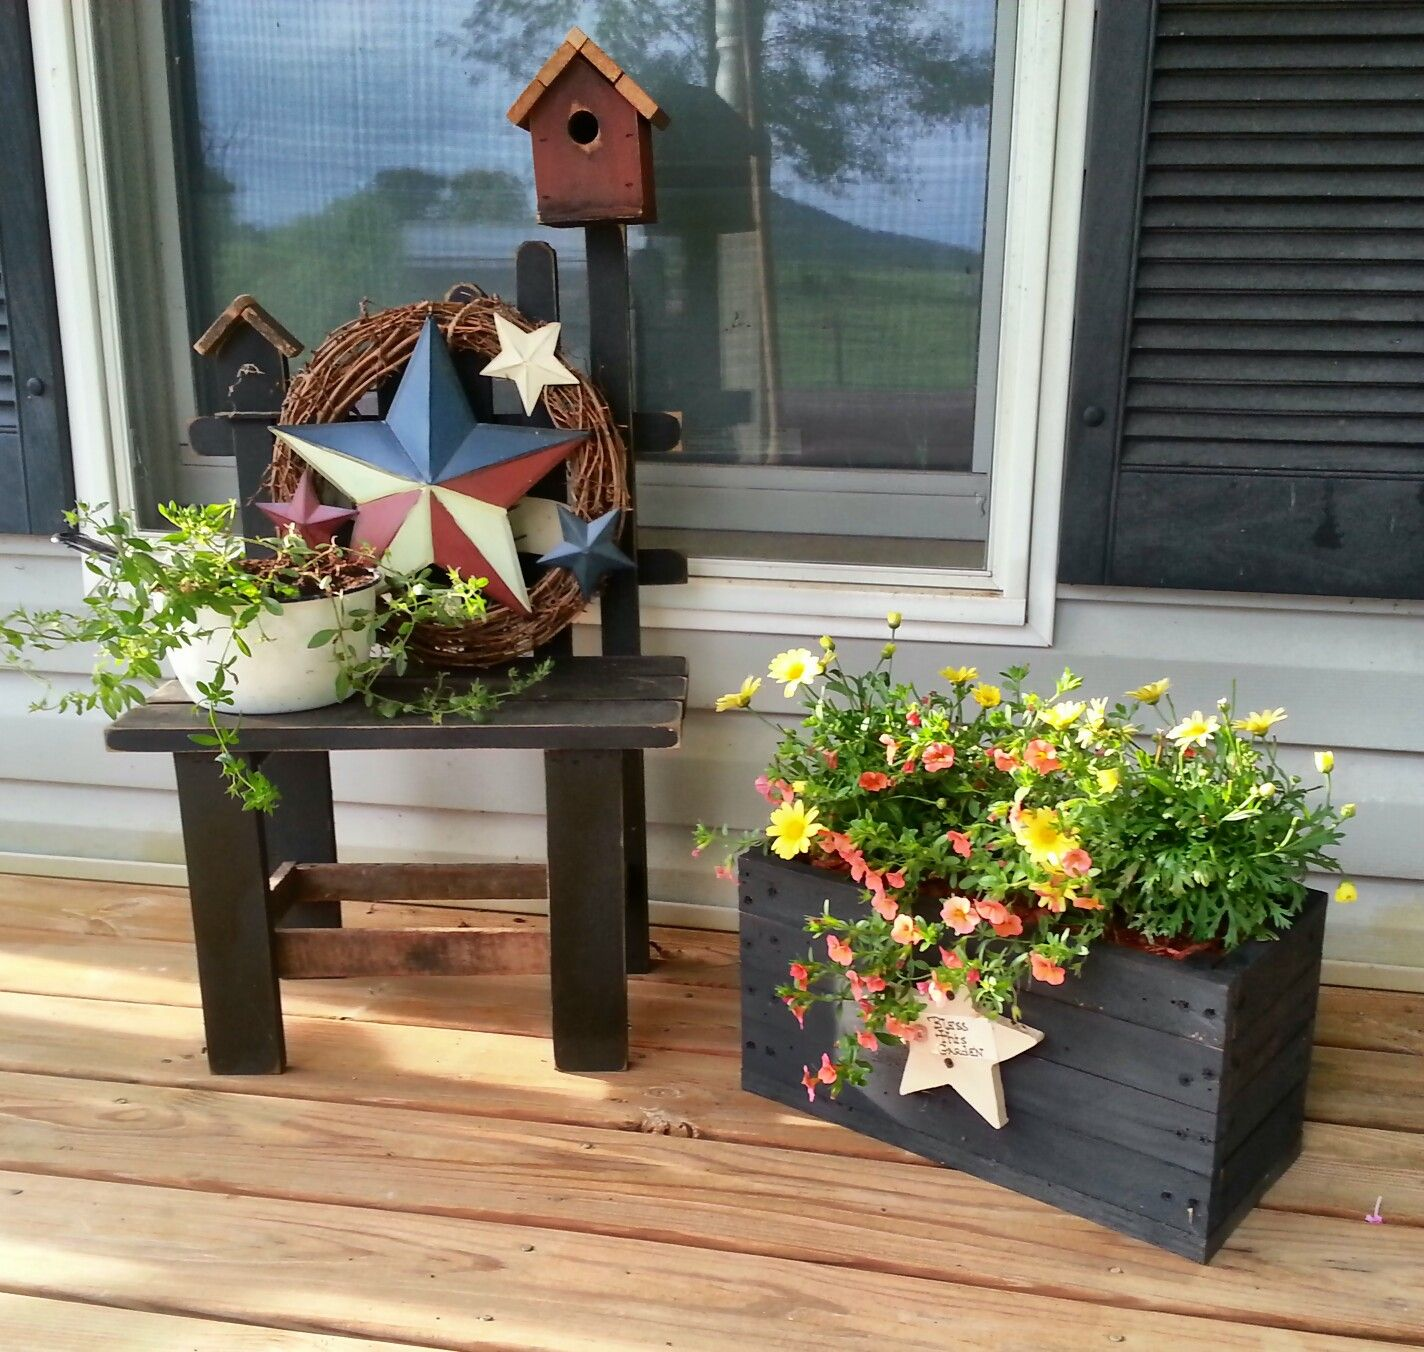 Spring Porch Decorating Ideas - Results